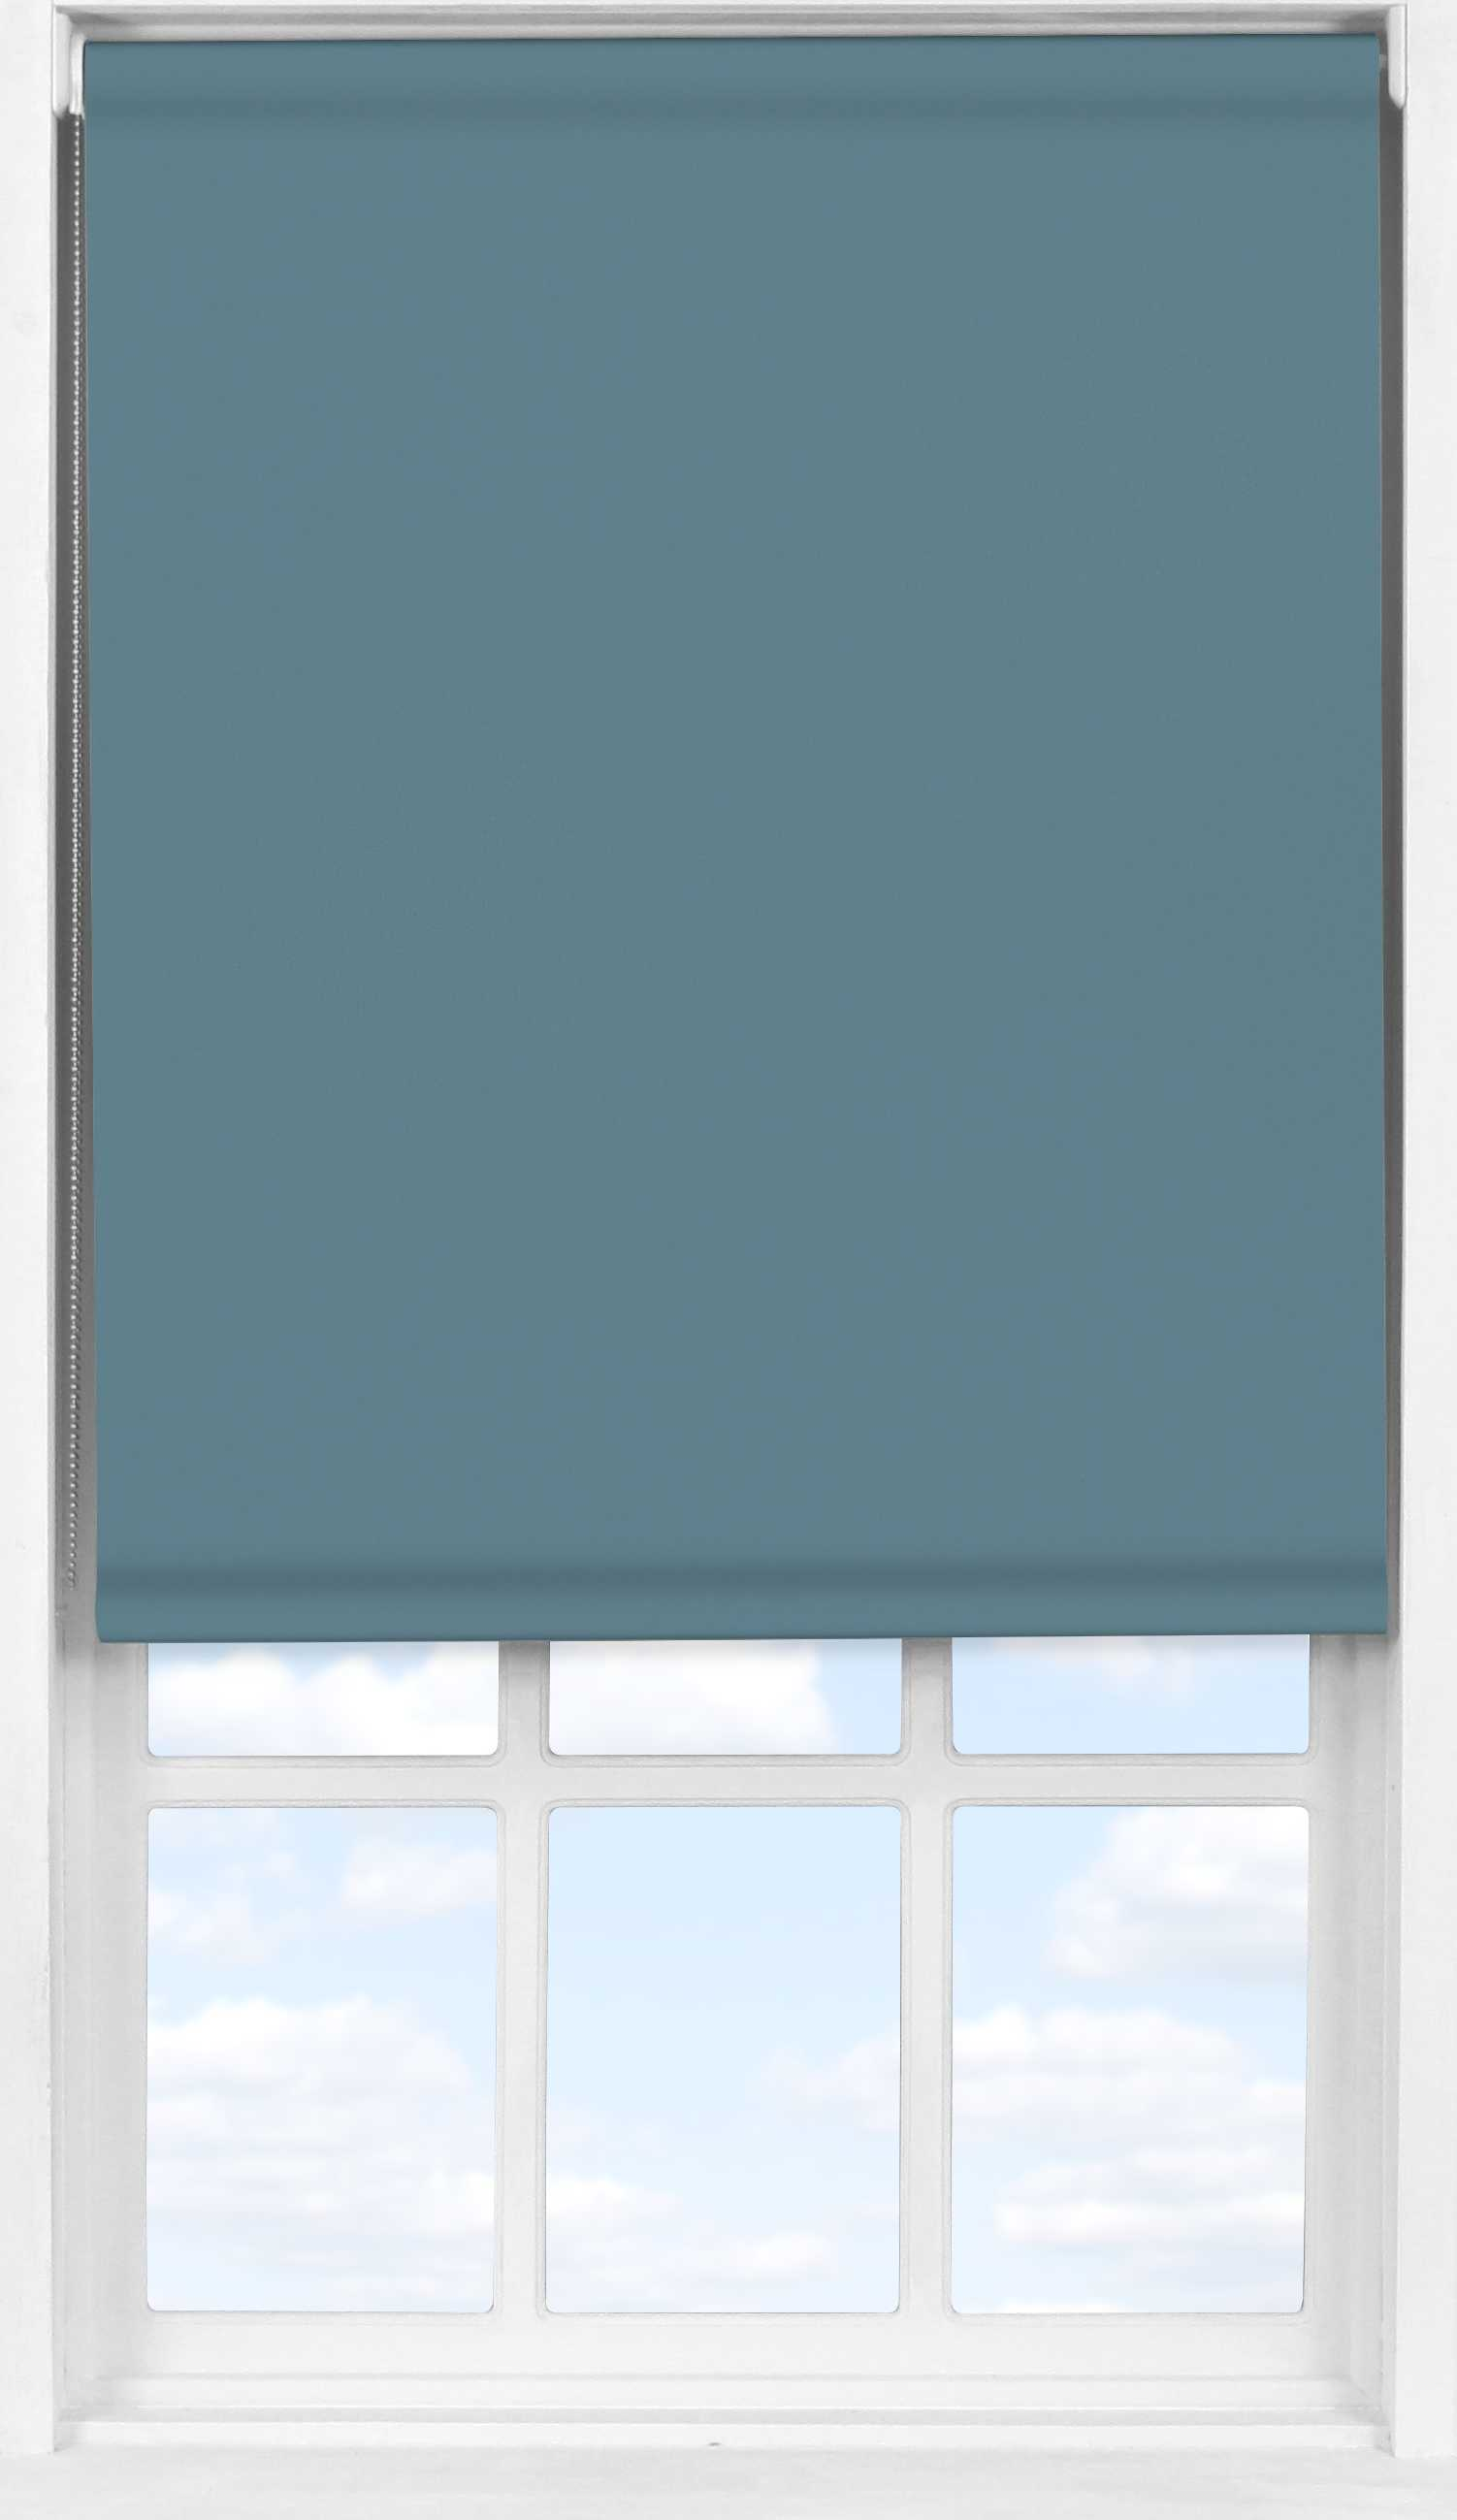 Easifit Roller Blind in Classic Blue Translucent